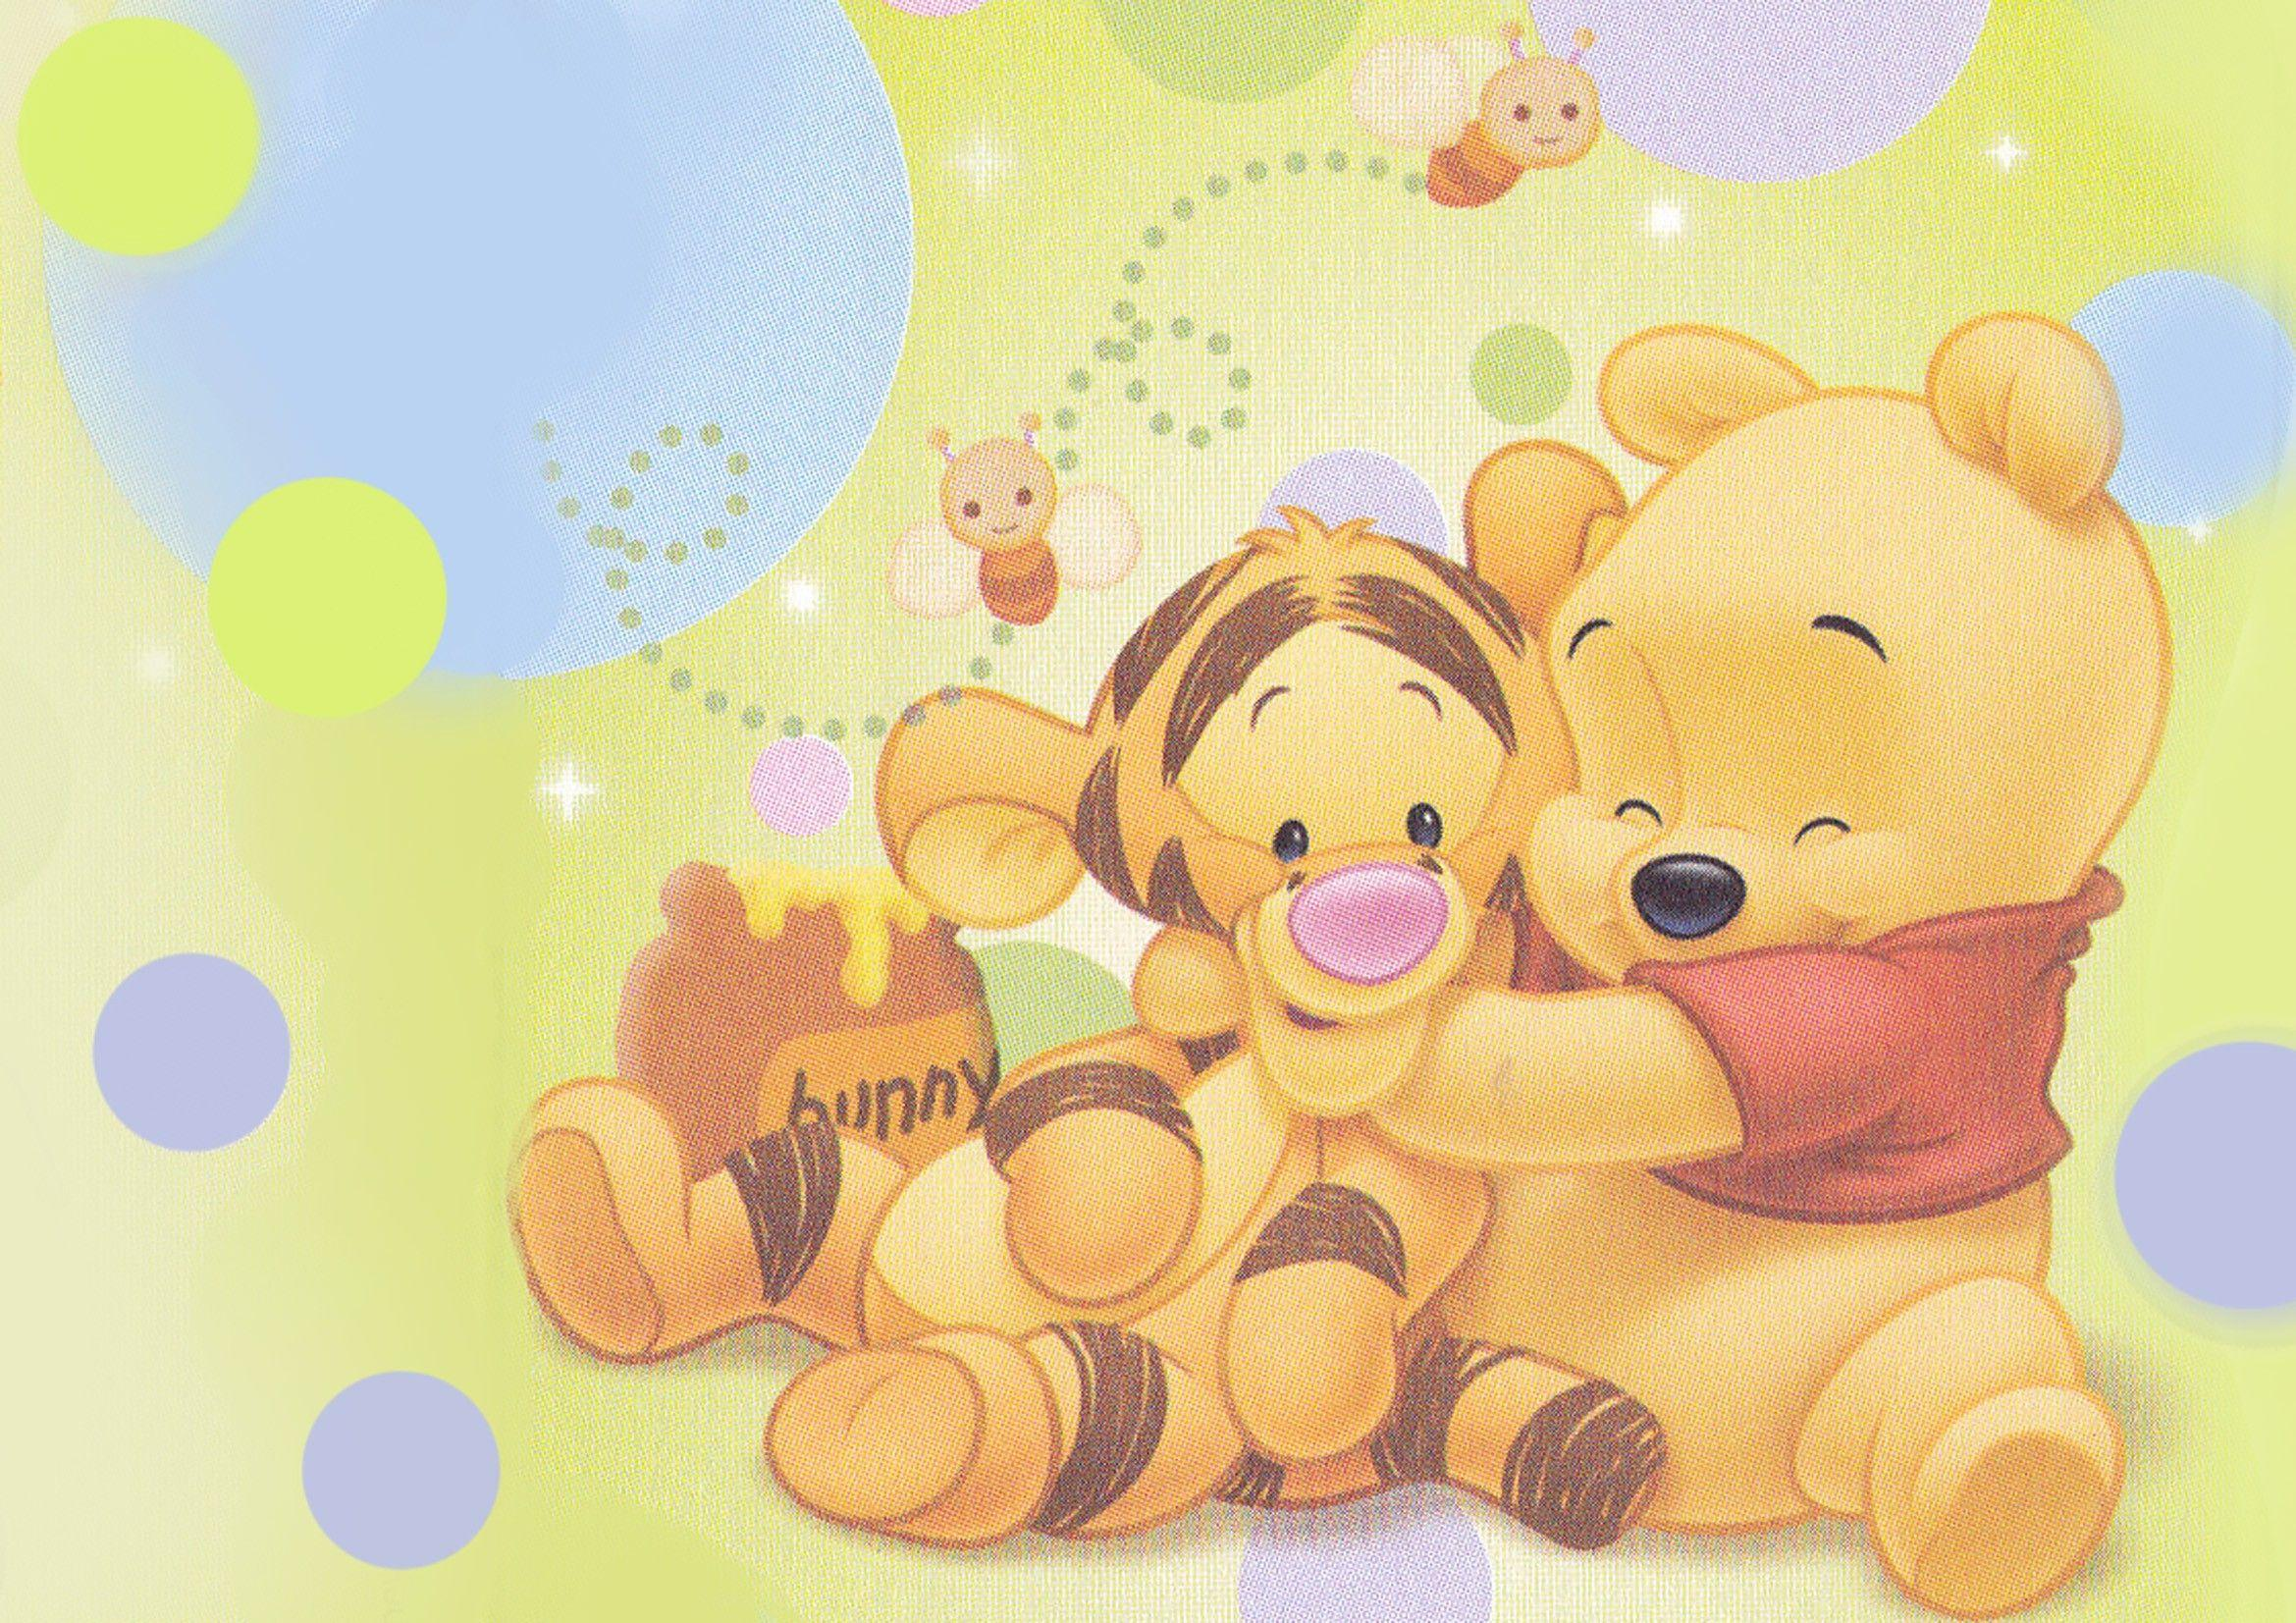 Wallpapers Winnie The Pooh As A Baby